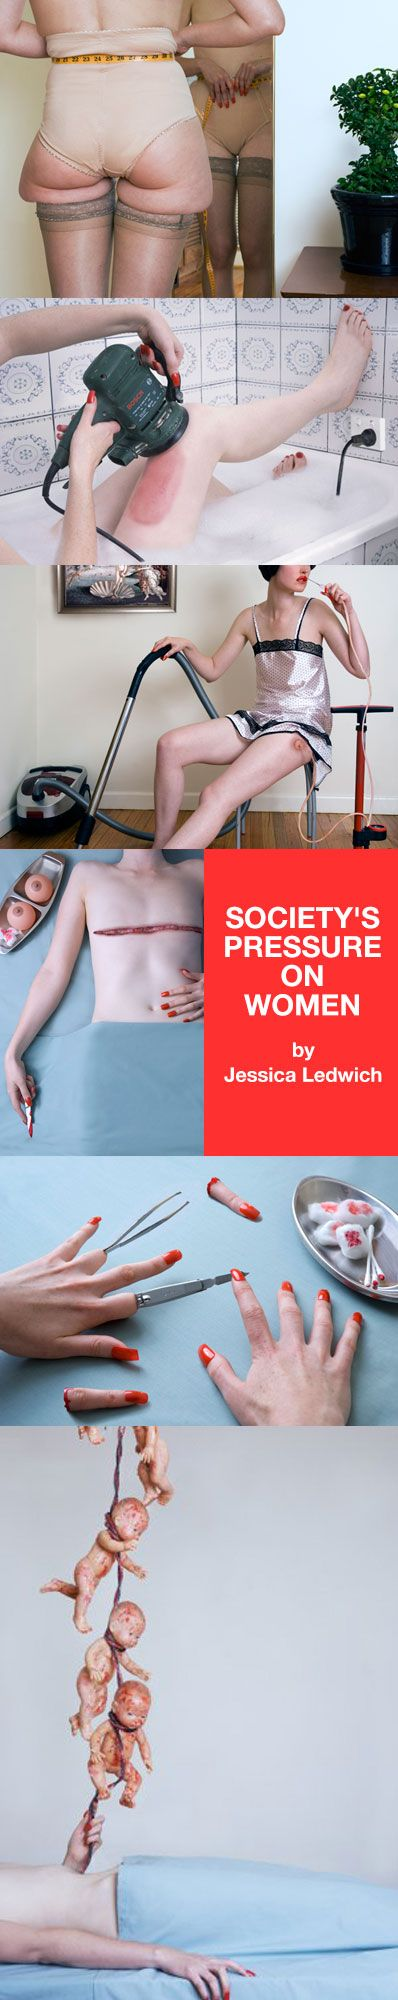 """""""This incredible series of photographs features """"morbid depictions of common beauty rituals"""" of women. Created by artist Jessica Ledwich, each photo is just as bizarre as the next, showing just what women have gone through in their beauty practices that are quite """"monstrous"""". Ledwich says her project explores the fact that throughout """"history, the bodies of women have been represented as a threatening form of sexuality""""."""""""